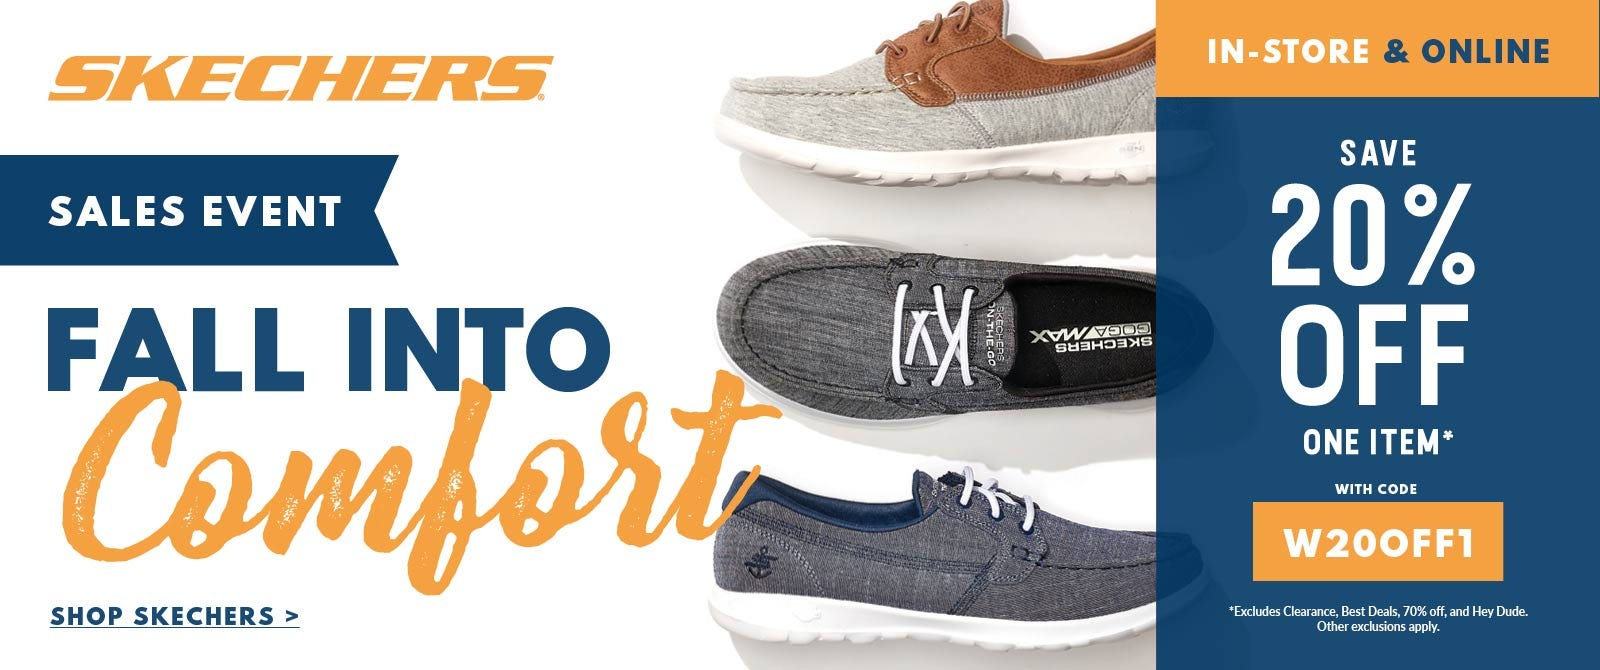 Fall Comfort Shoes from Skechers are here!